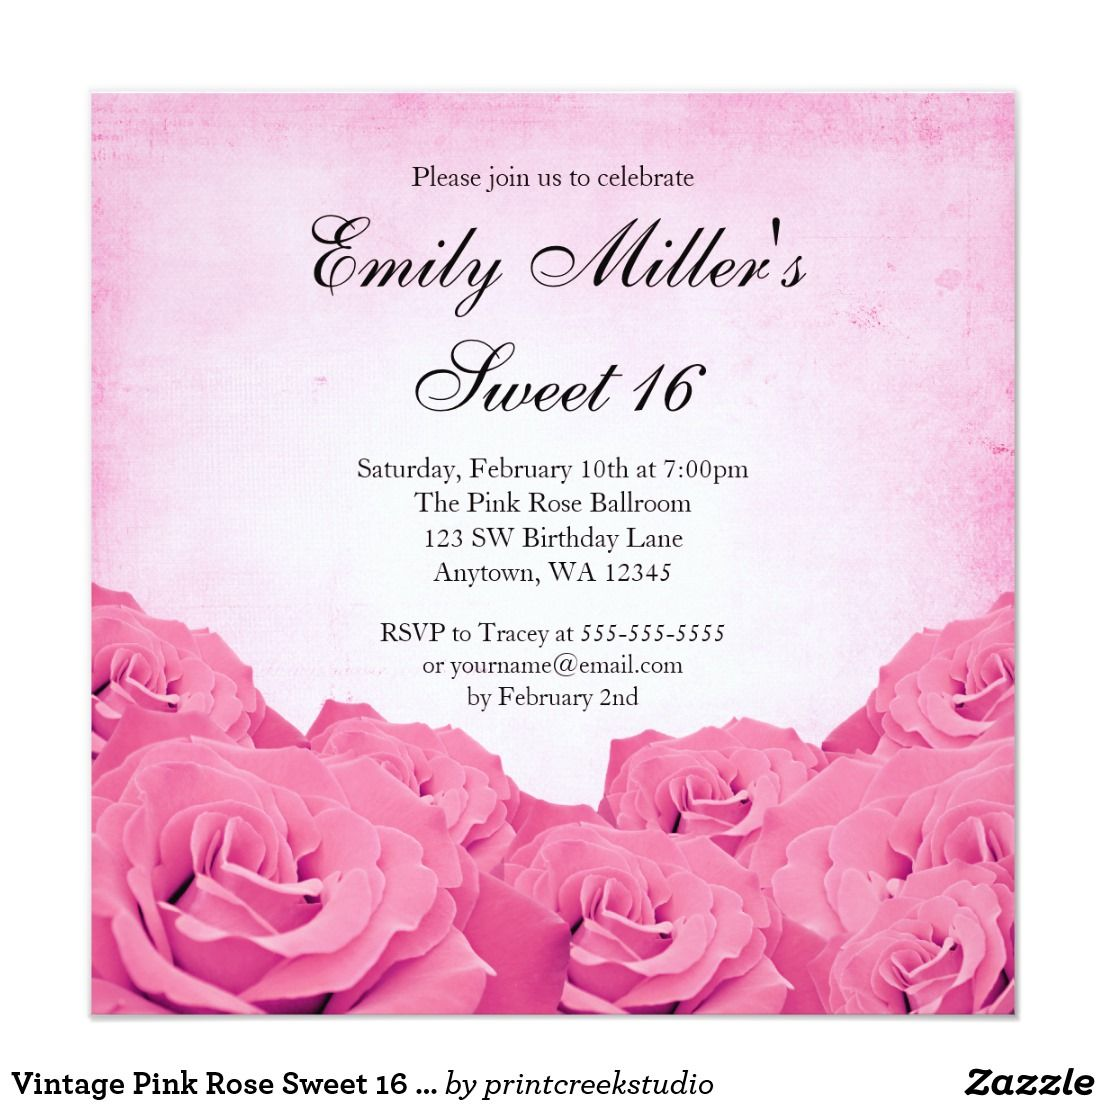 Vintage Pink Rose Sweet 16 Birthday Party Card Invitations Roses Are Featured On This Themed